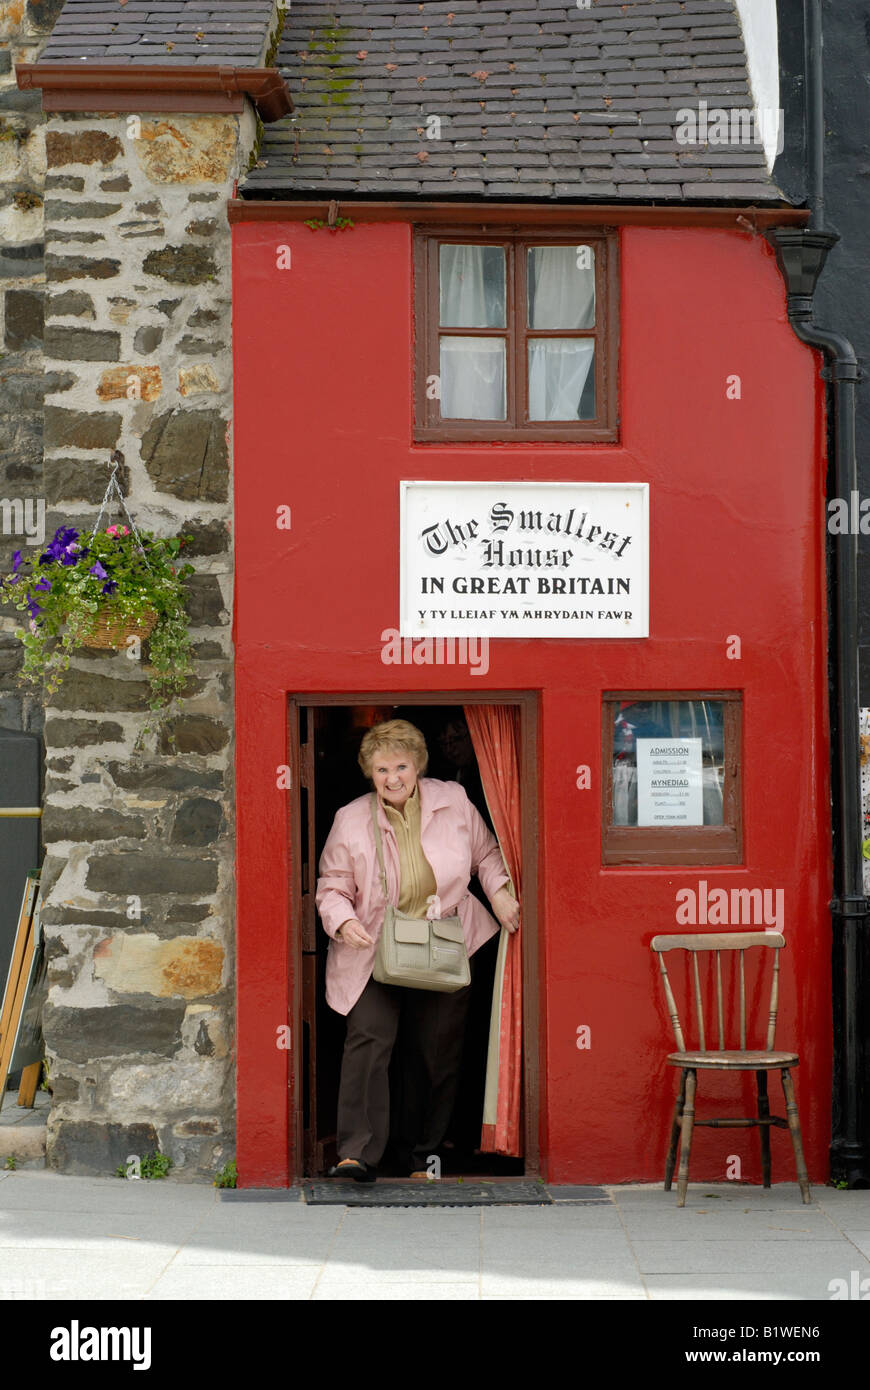 Smallest House Part - 31: Smallest House In Great Britain Conwy Wales UK - Stock Image